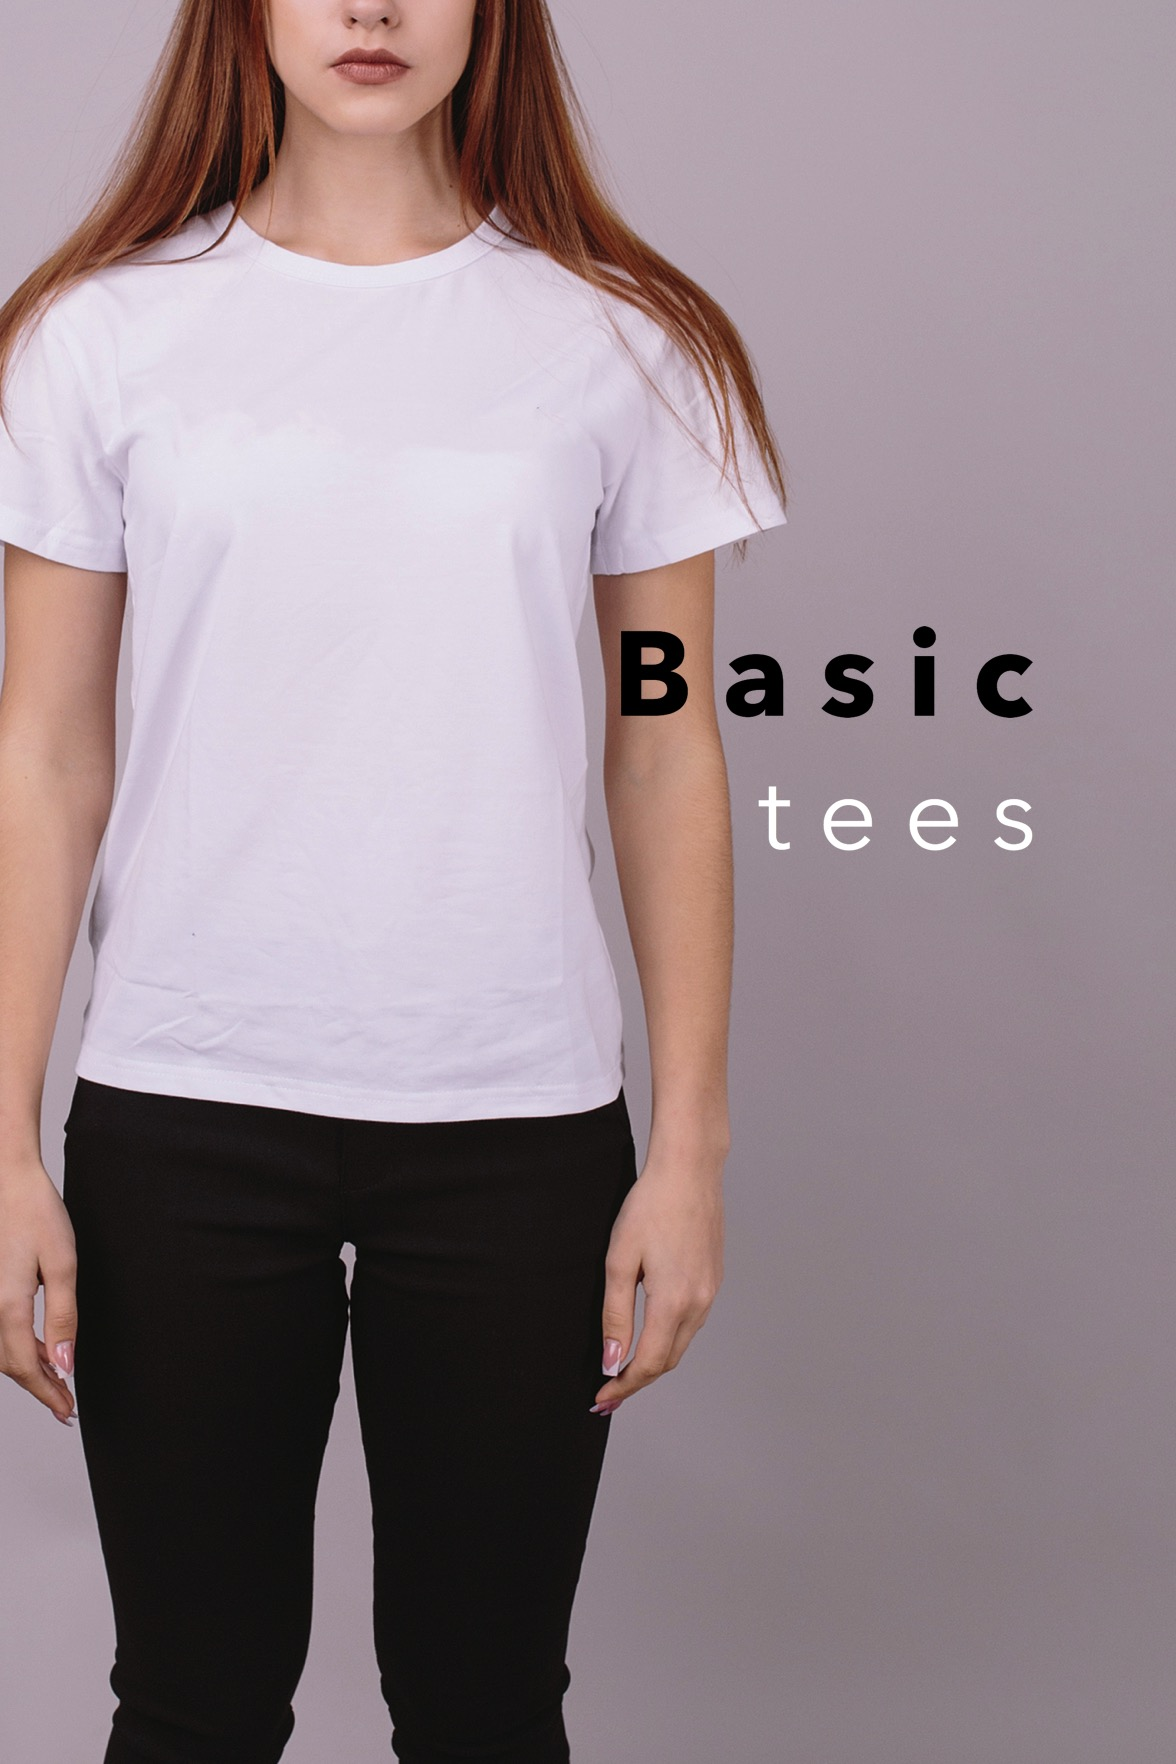 The Basic Tees